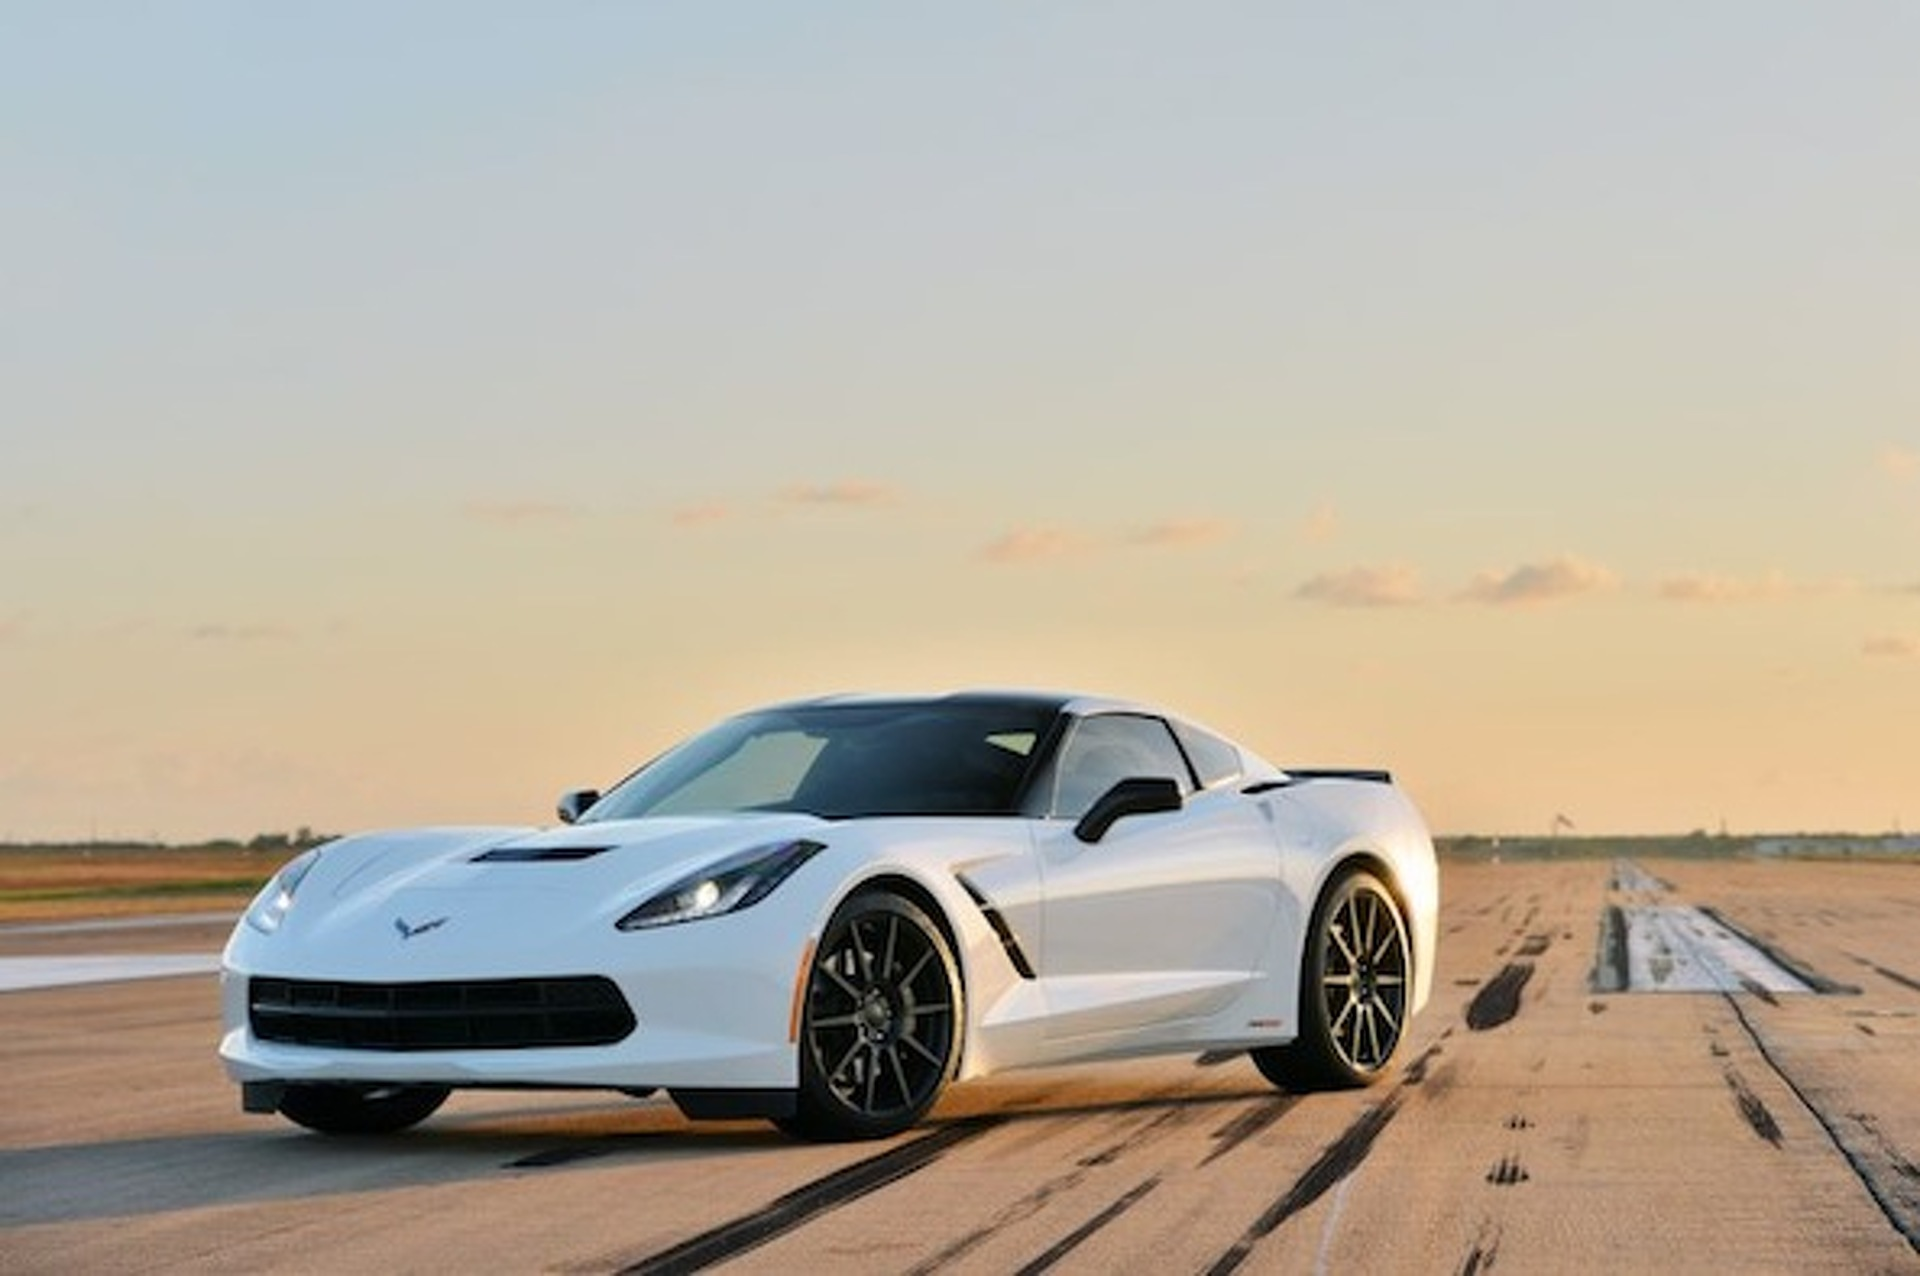 Hennessey Corvette Stingray: America's Sportscar Gets the Texas Treatment